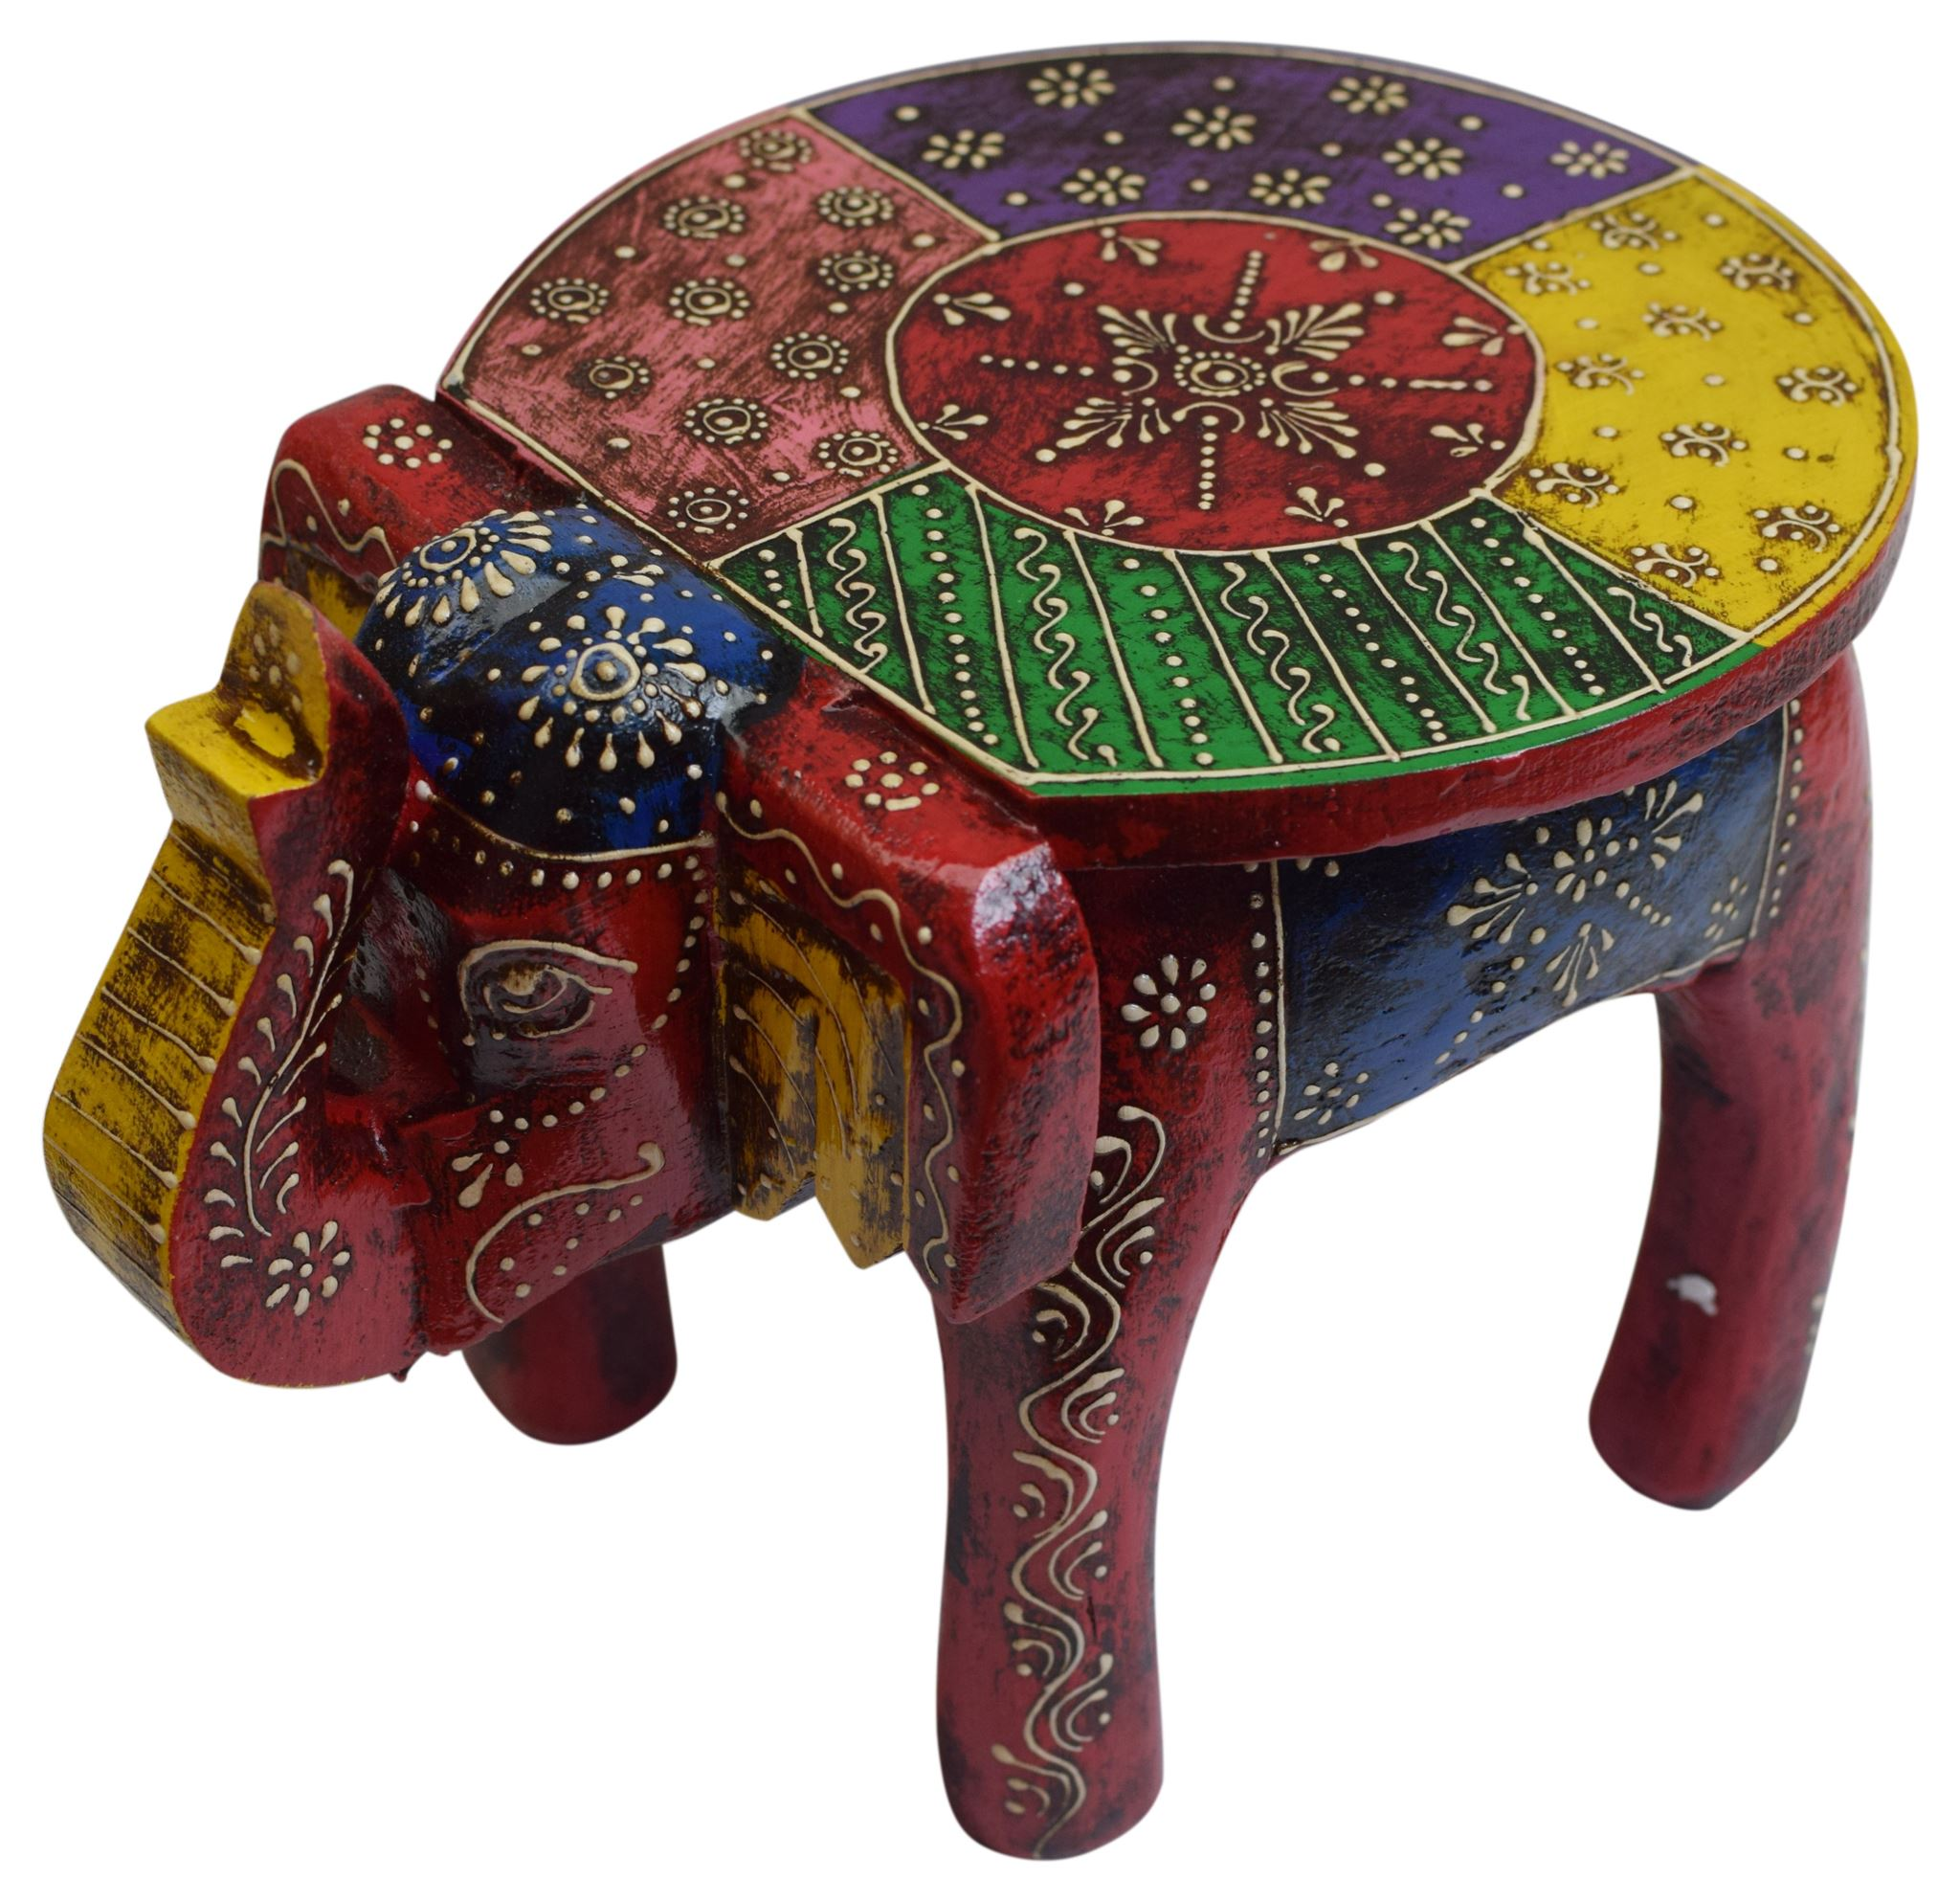 Pleasant Details About Colorful Wooden Elephant Stool Wood Footstool Gift Onthecornerstone Fun Painted Chair Ideas Images Onthecornerstoneorg